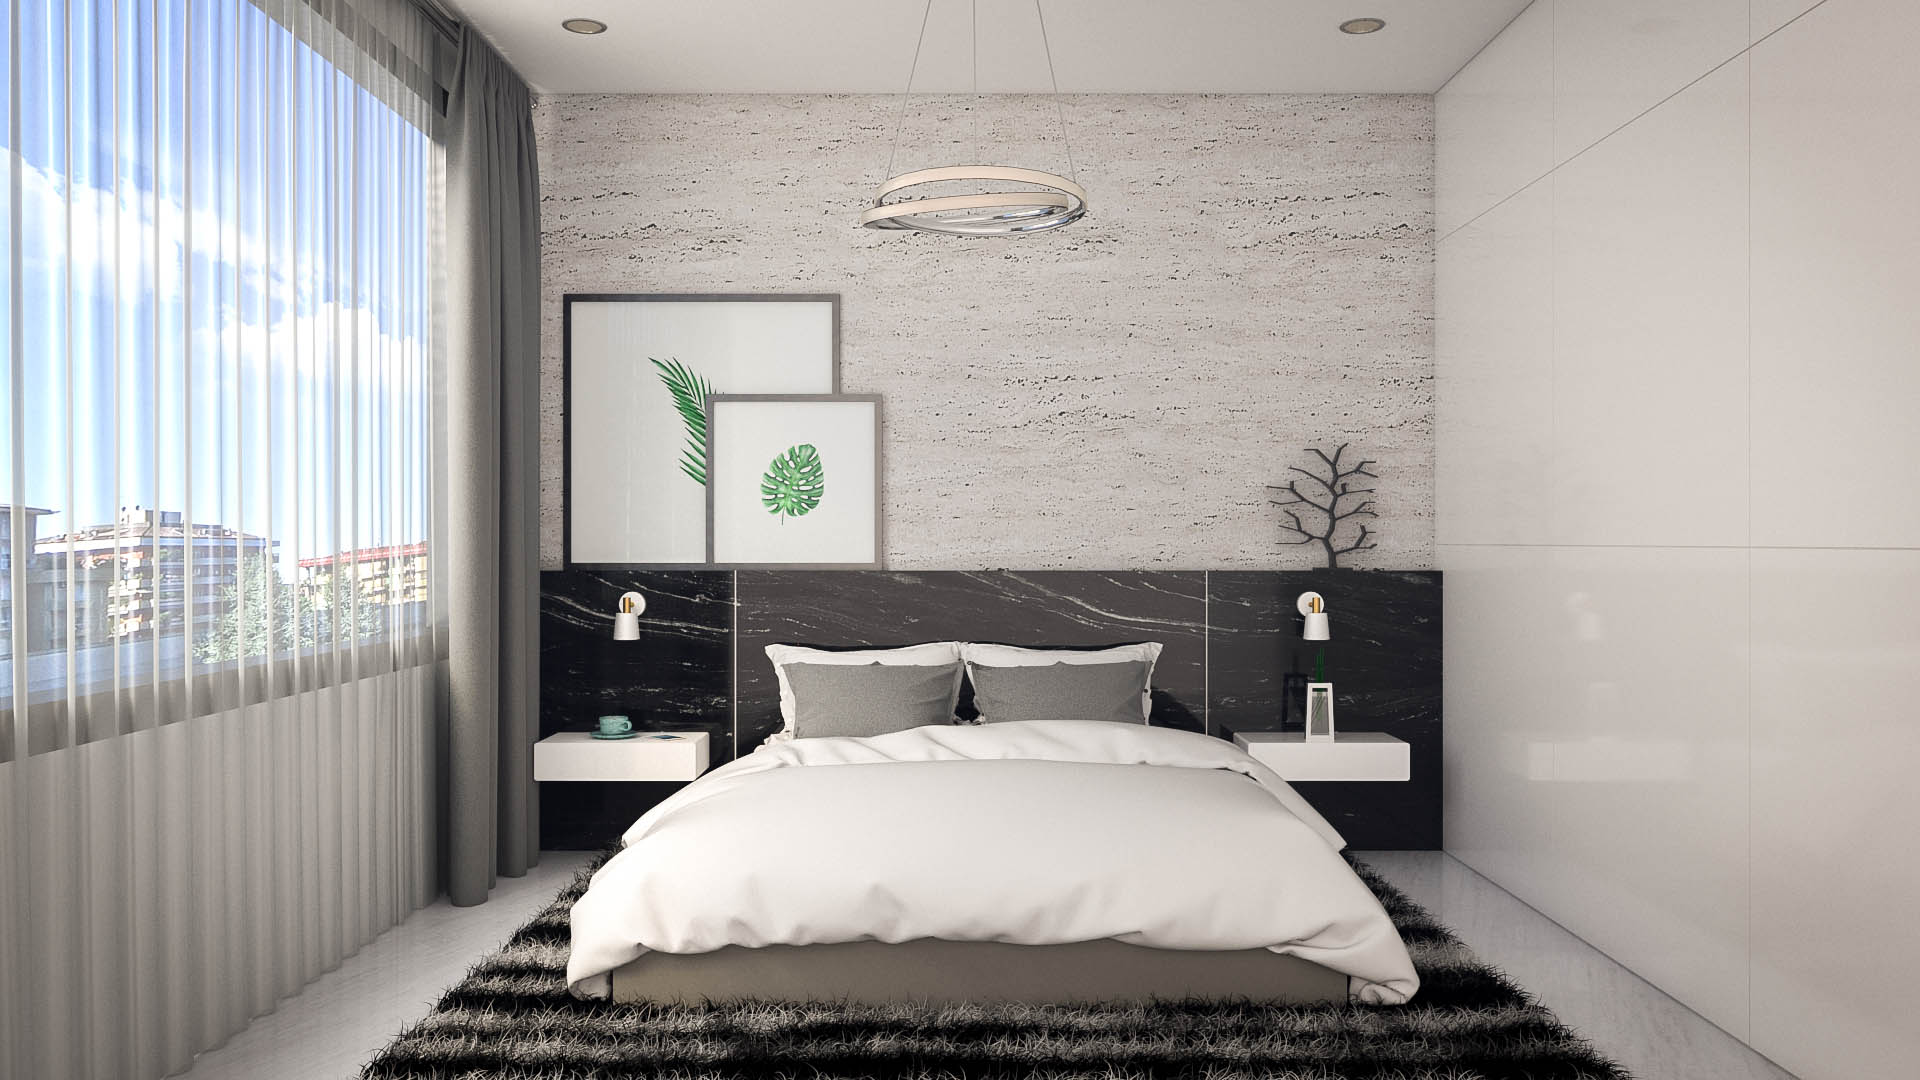 Small Modern Bedroom Design Ideas - Minimalist Bedroom Interior